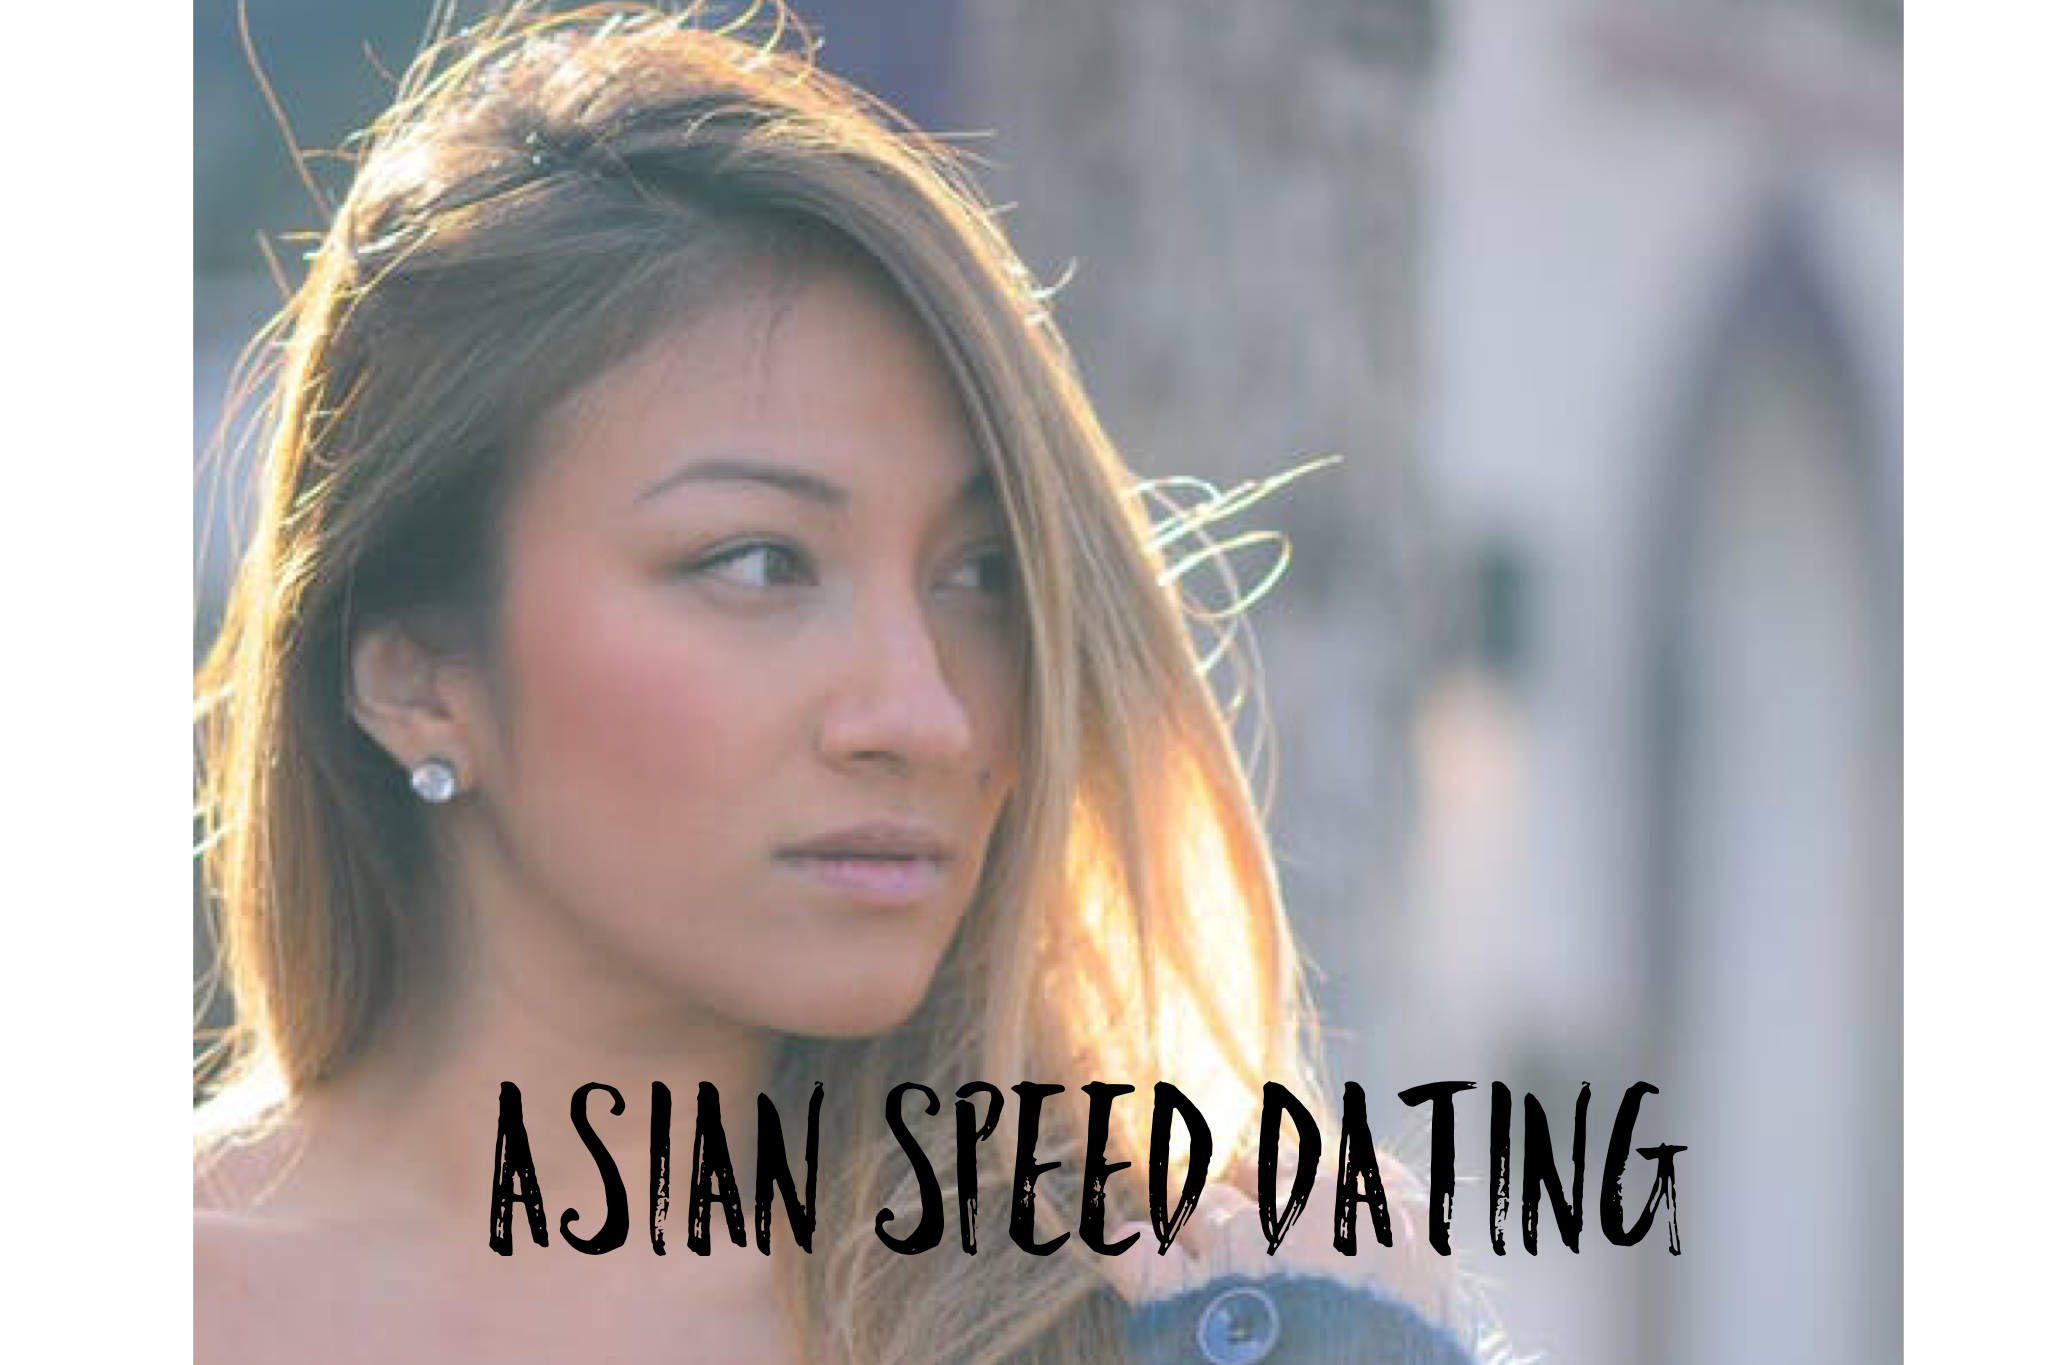 Asian speed dating in los angeles